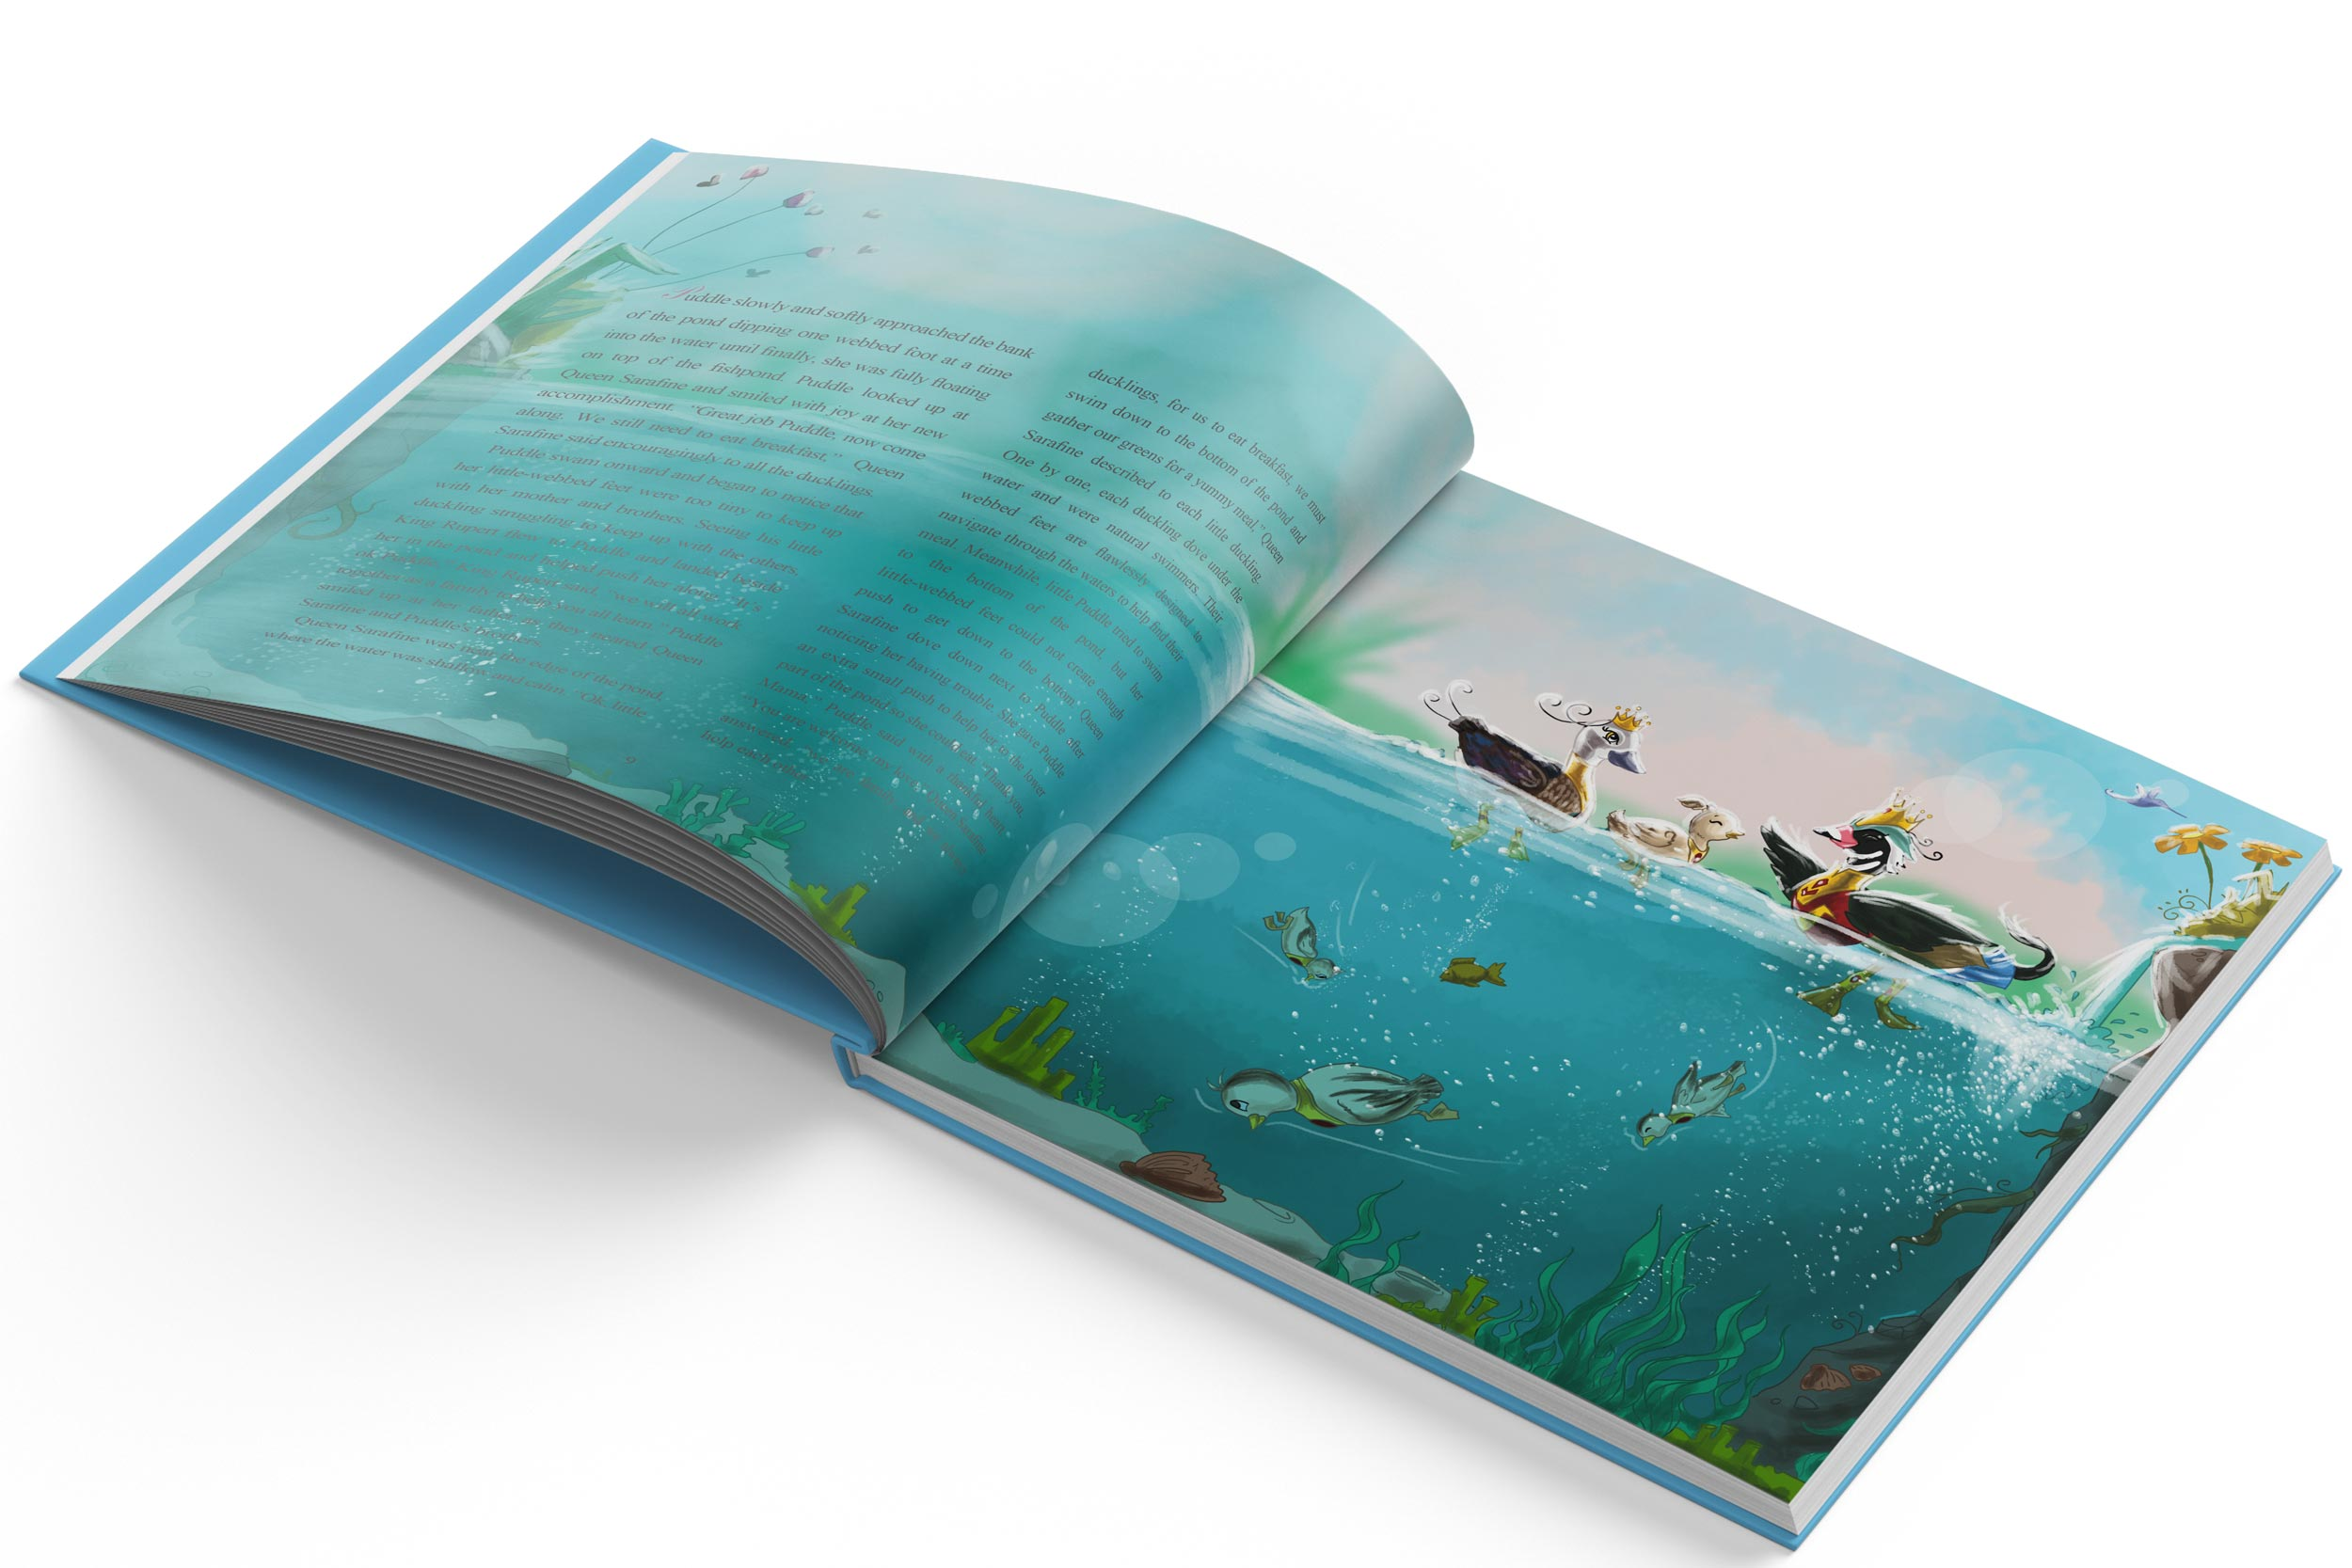 journey-of-puddle-christian-illustrated-children-books-book-1-look-inside-page-2.jpg